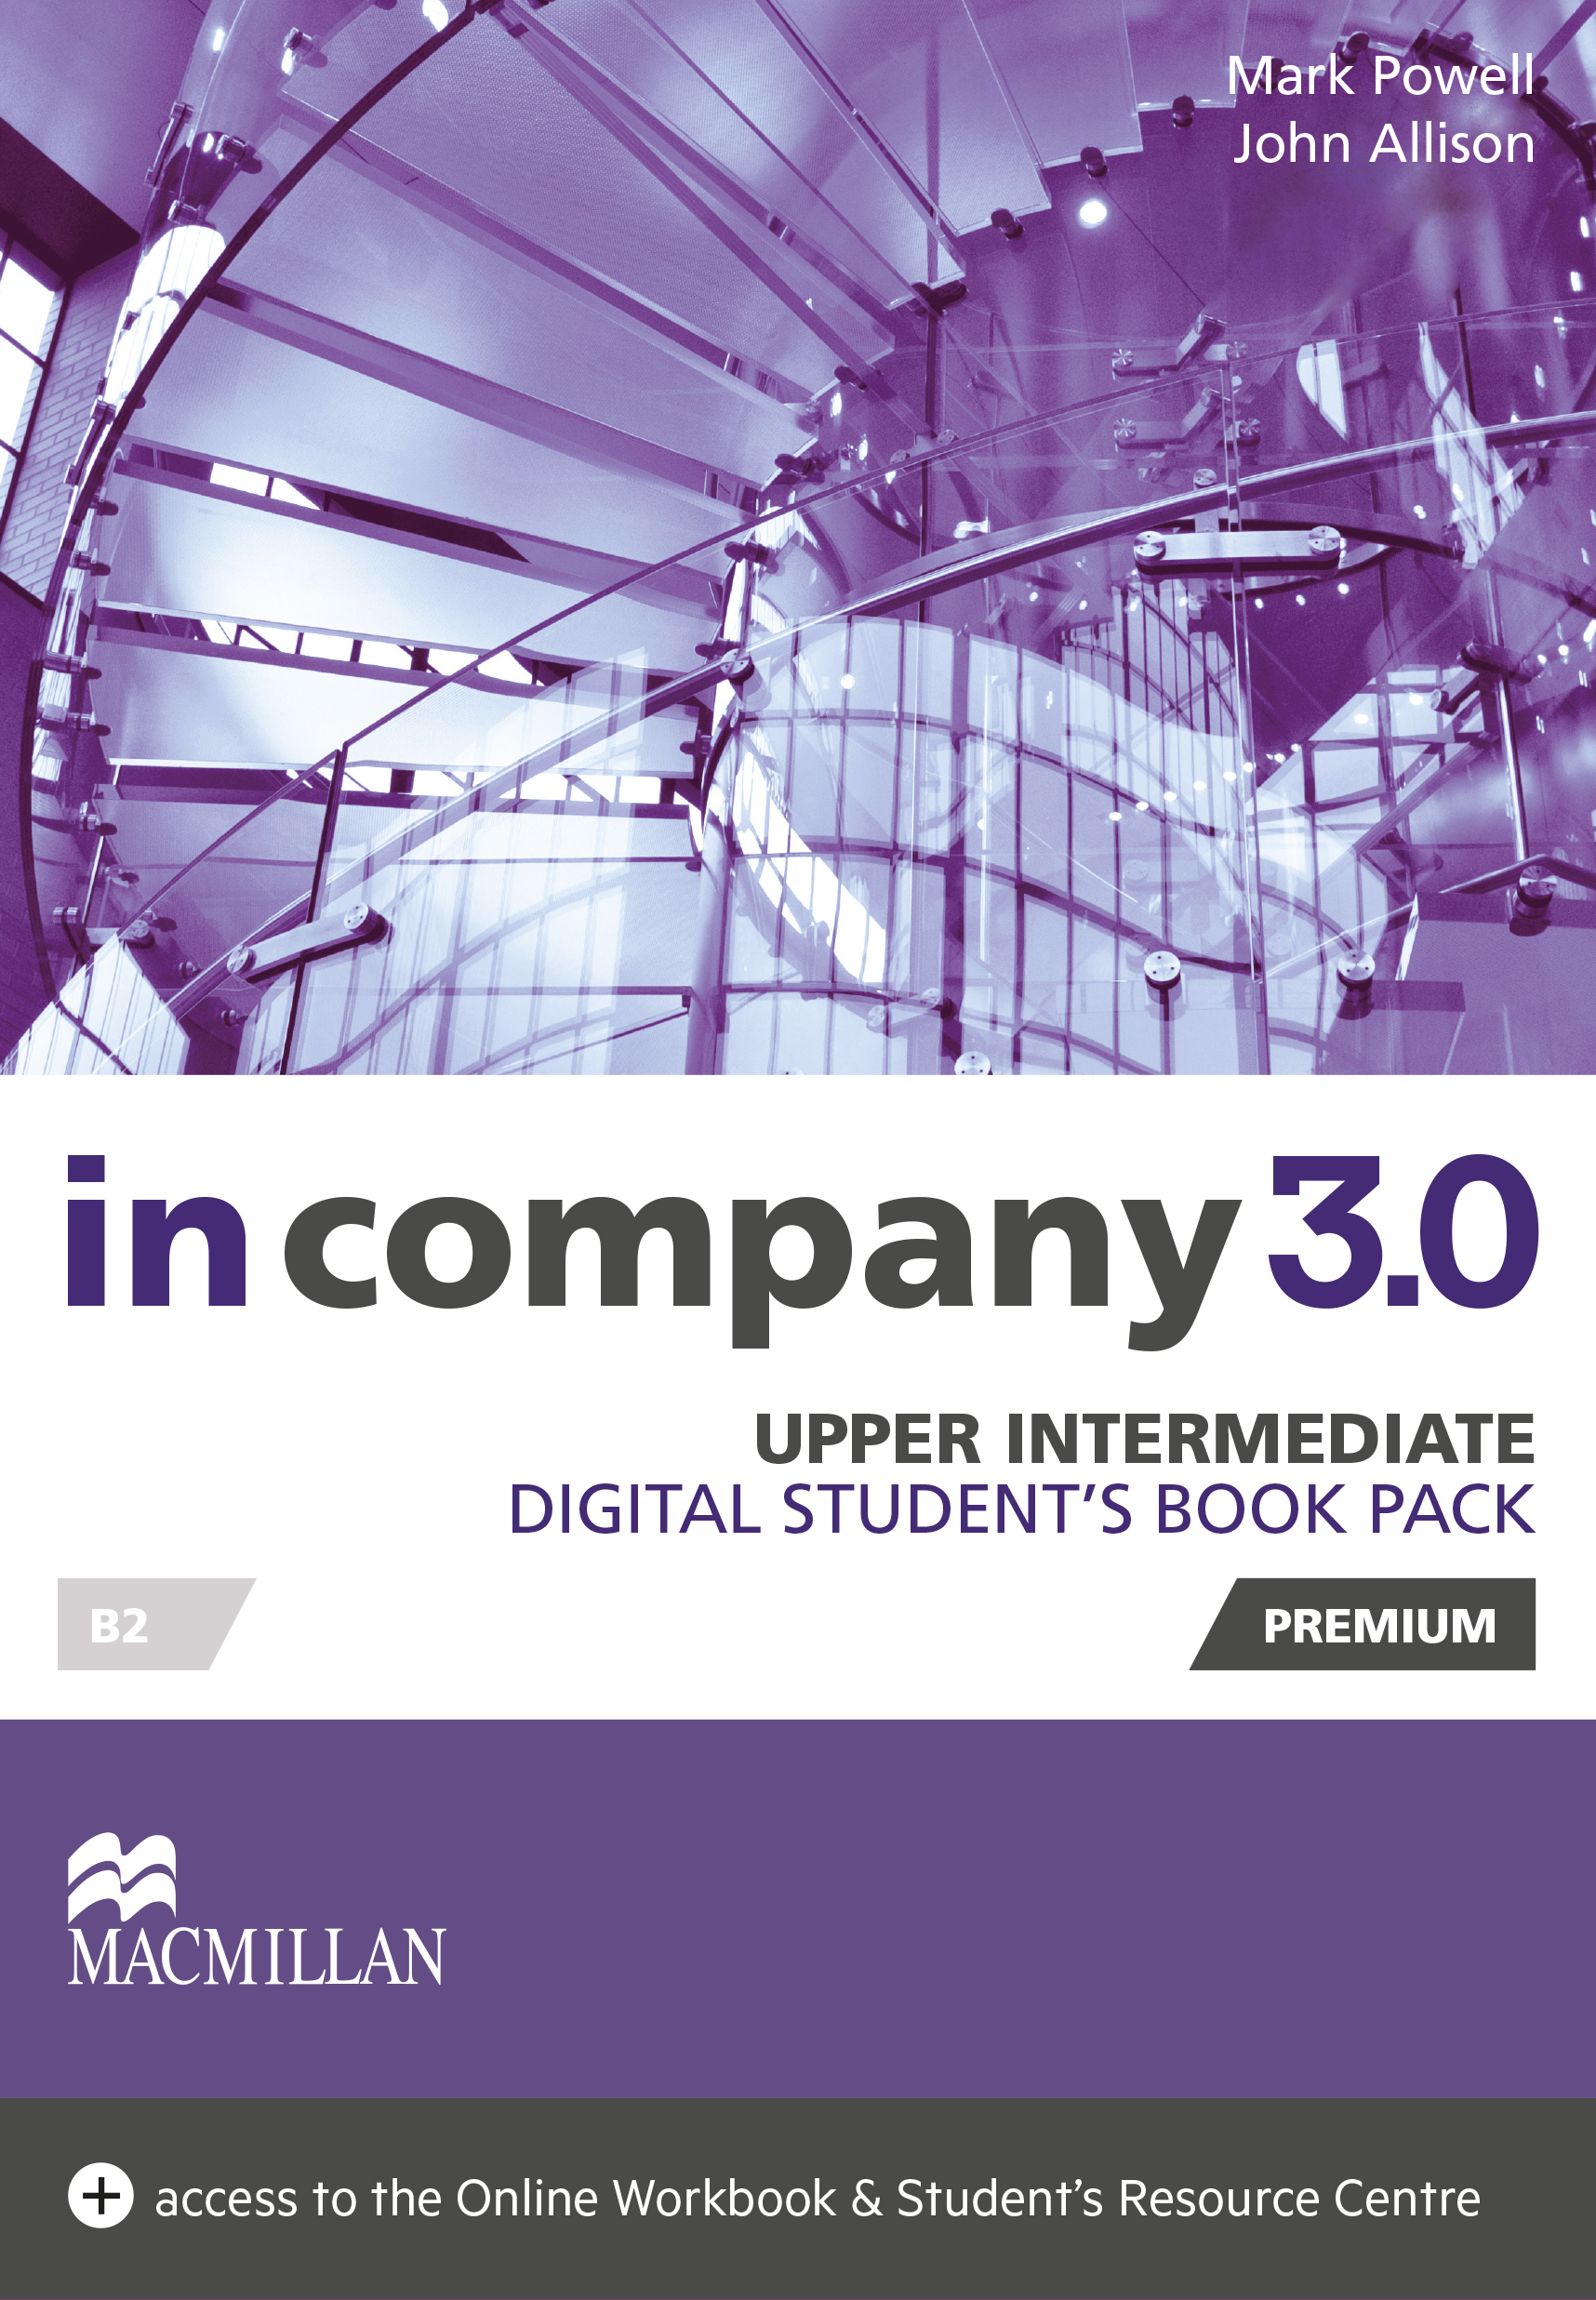 In Company 3.0 Upper Intermediate Level Digital Student